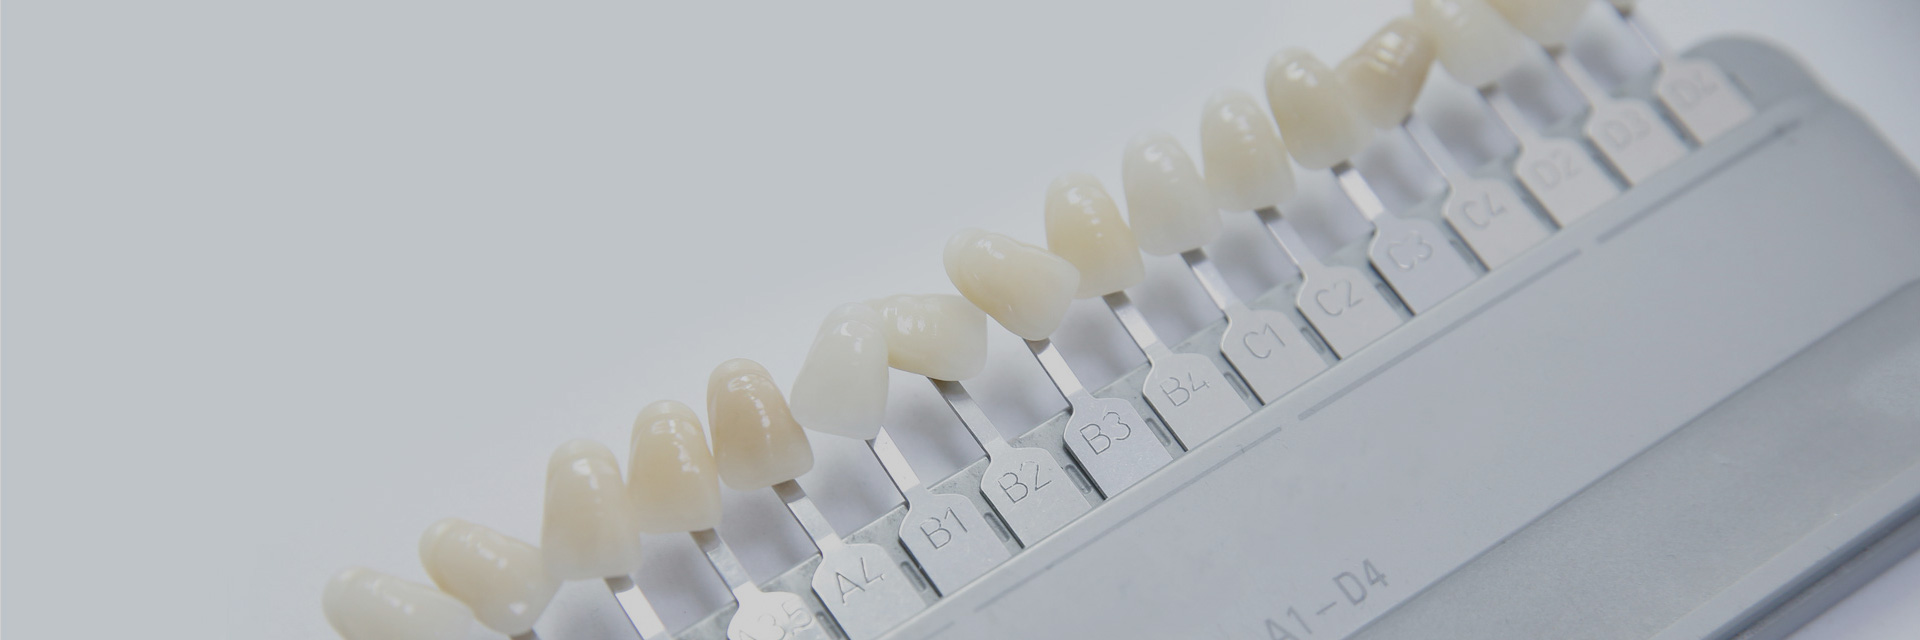 Discover the benefits of porcelain veneers for smile enhancement in Georgetown, TX